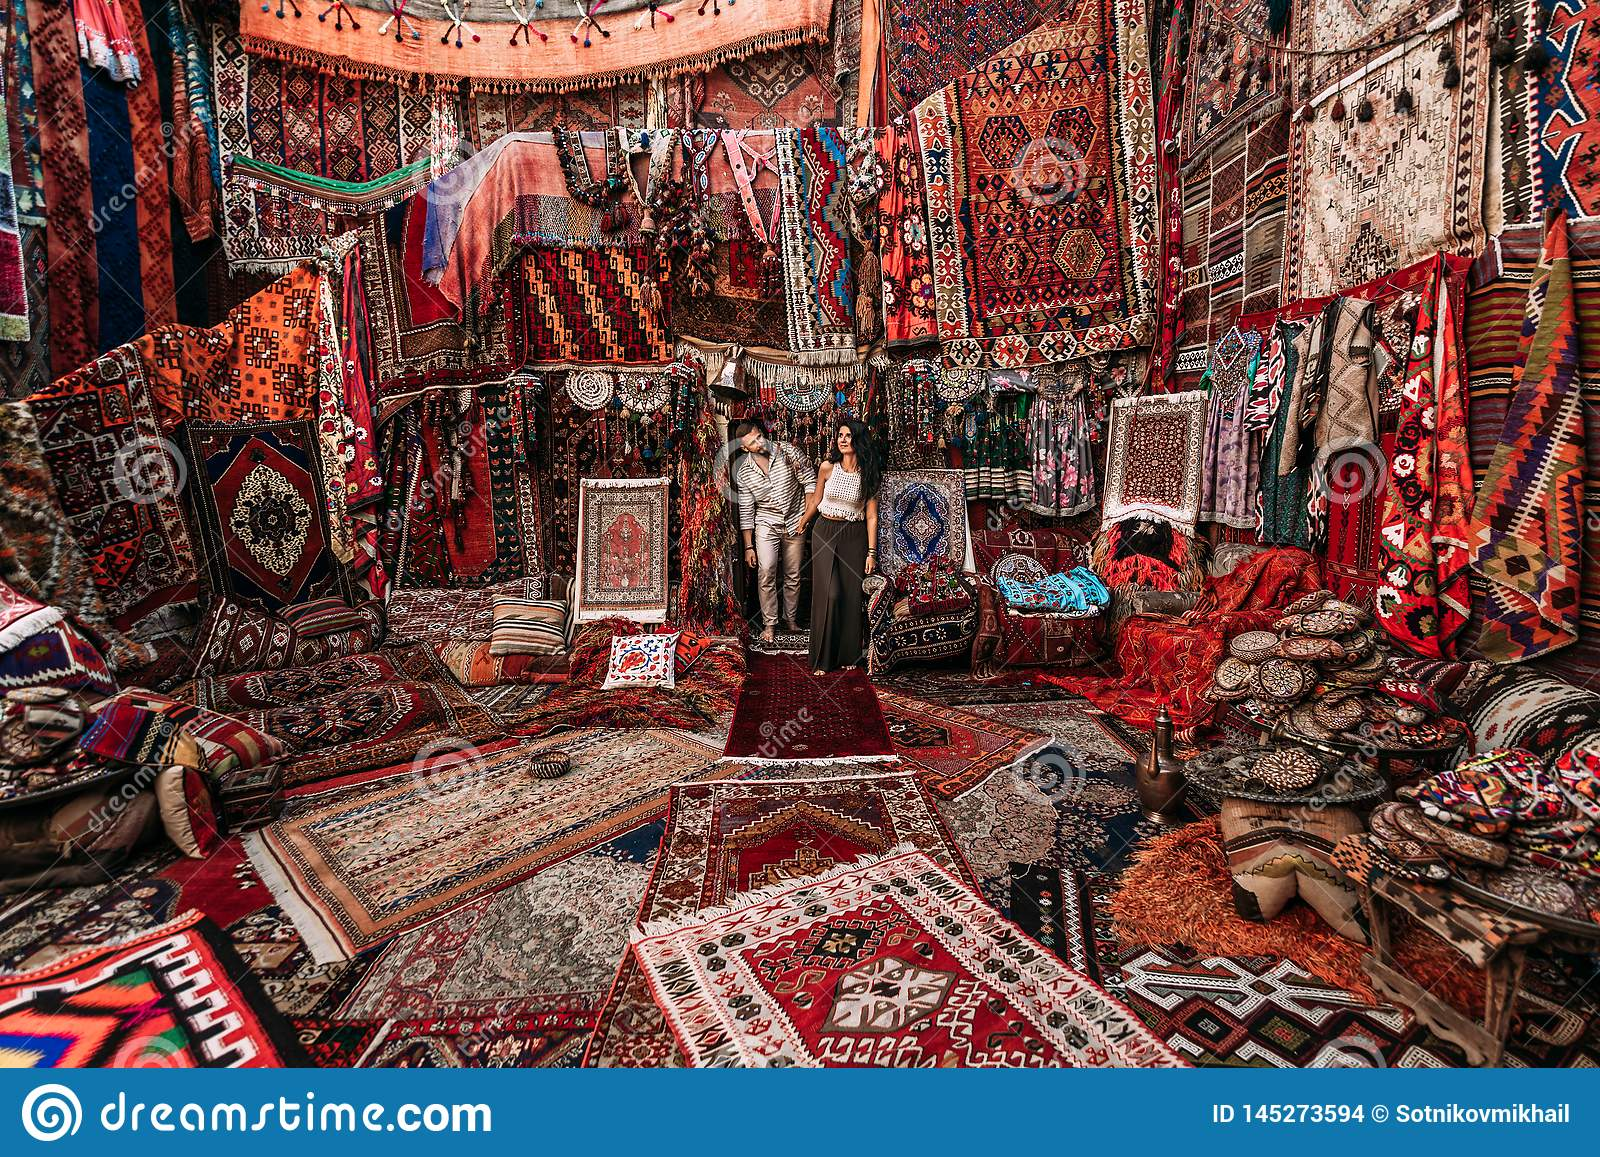 Man and woman in the store. Couple in love in Turkey. Man and woman in the Eastern country. Gift shop. A couple in love travels.